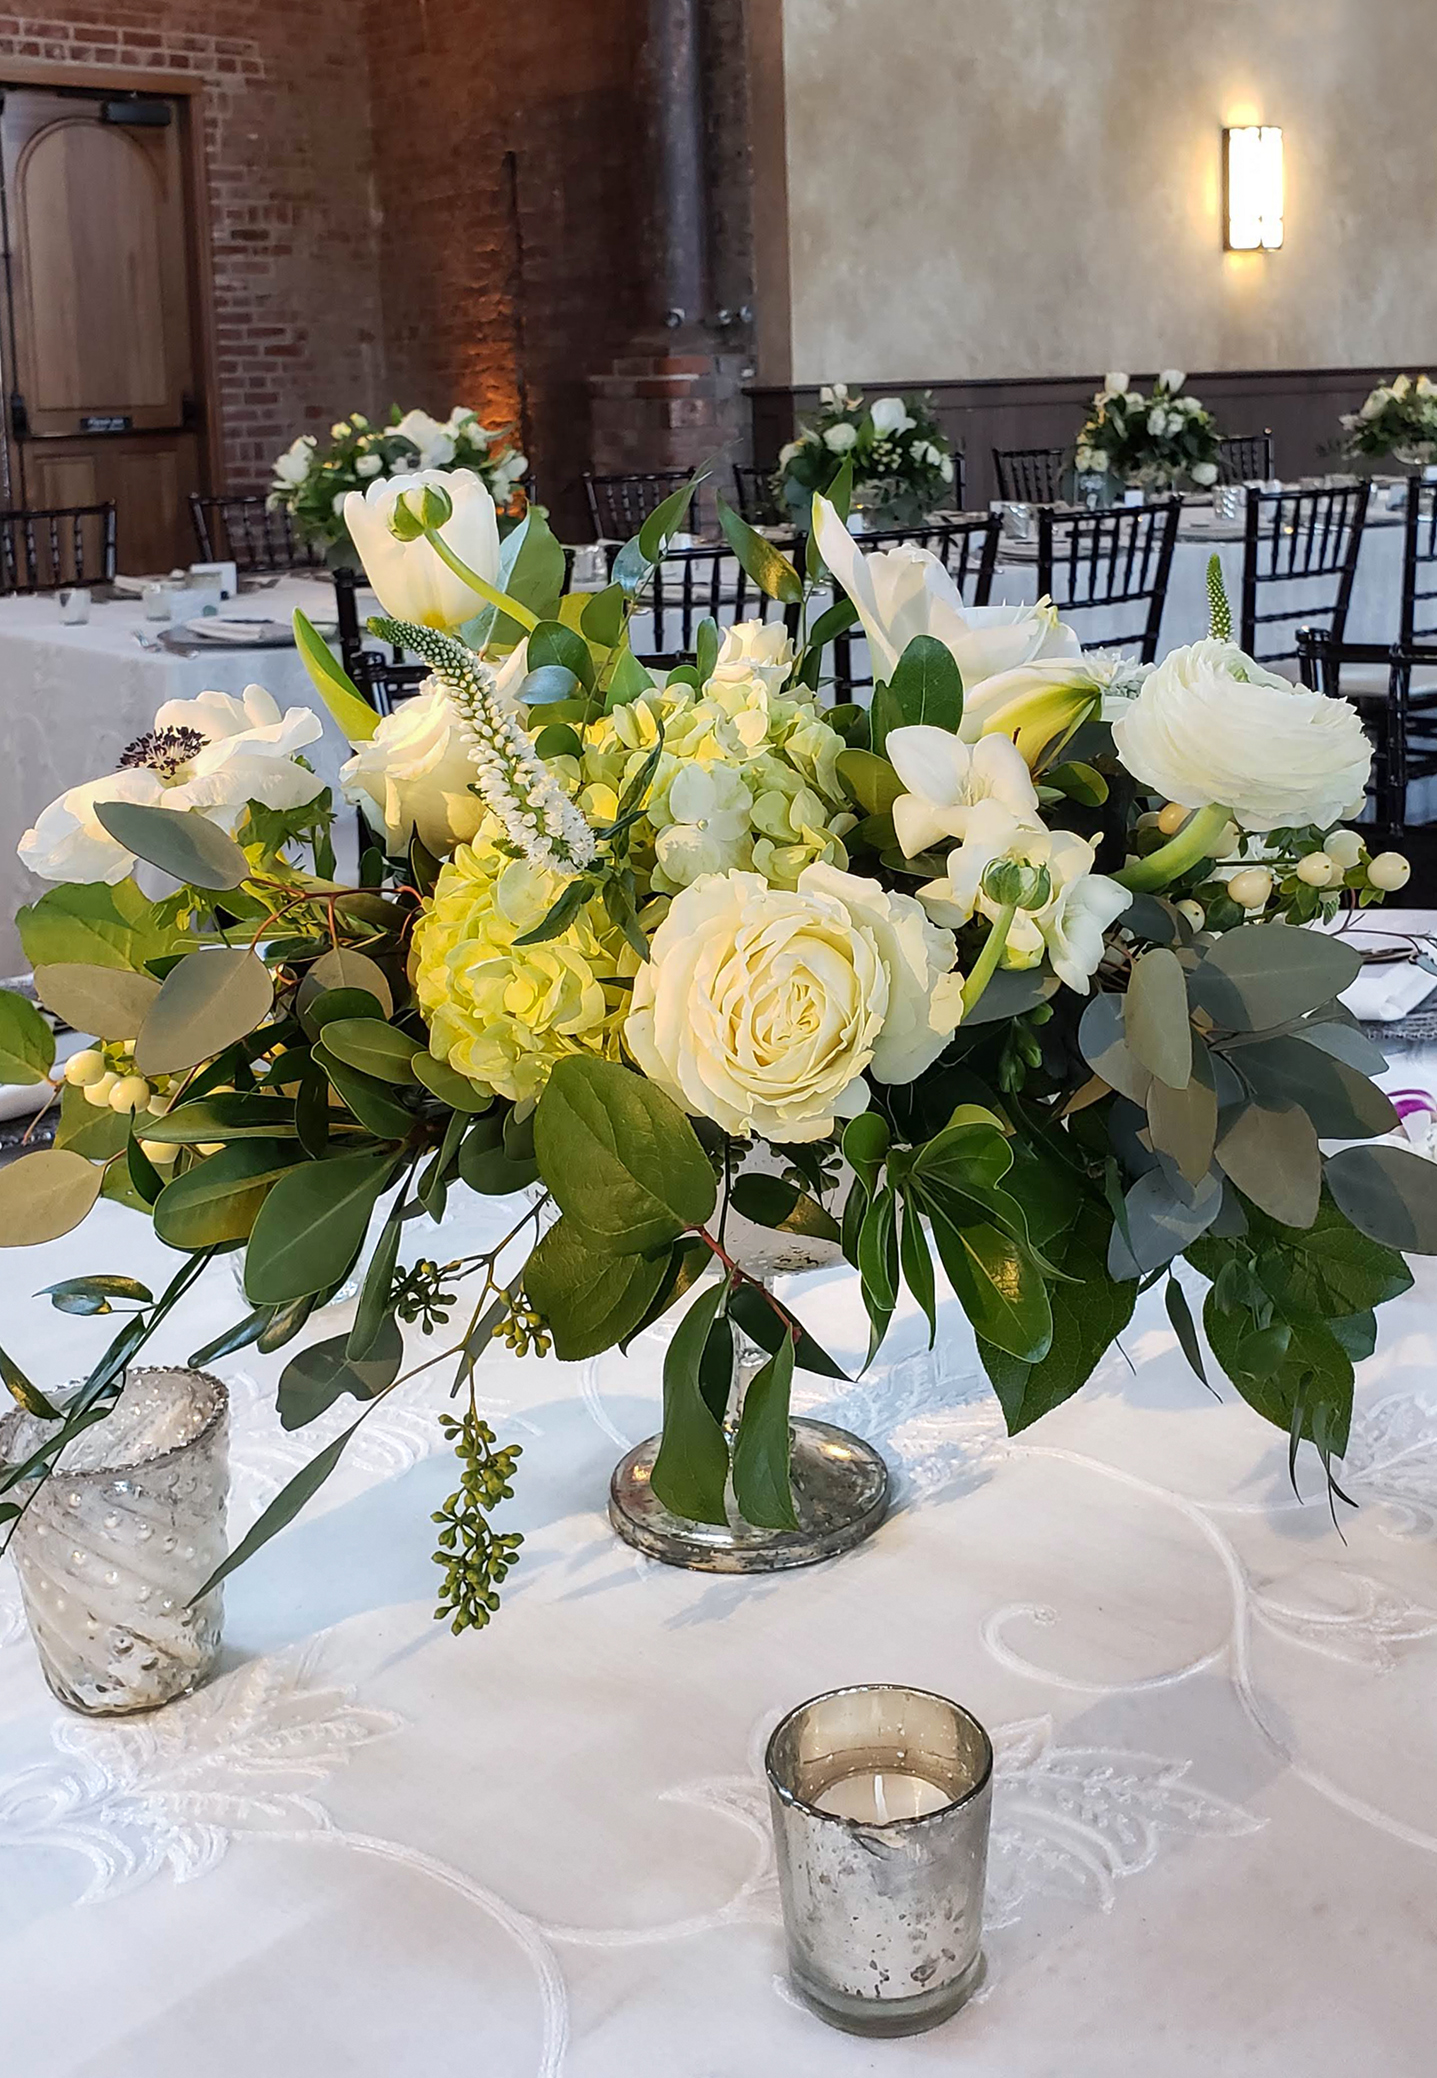 For a winter wedding at The Monastery, a classic neutral palette of white and green in a low and lush pedestal fresh spring flower centerpiece in a natural style.